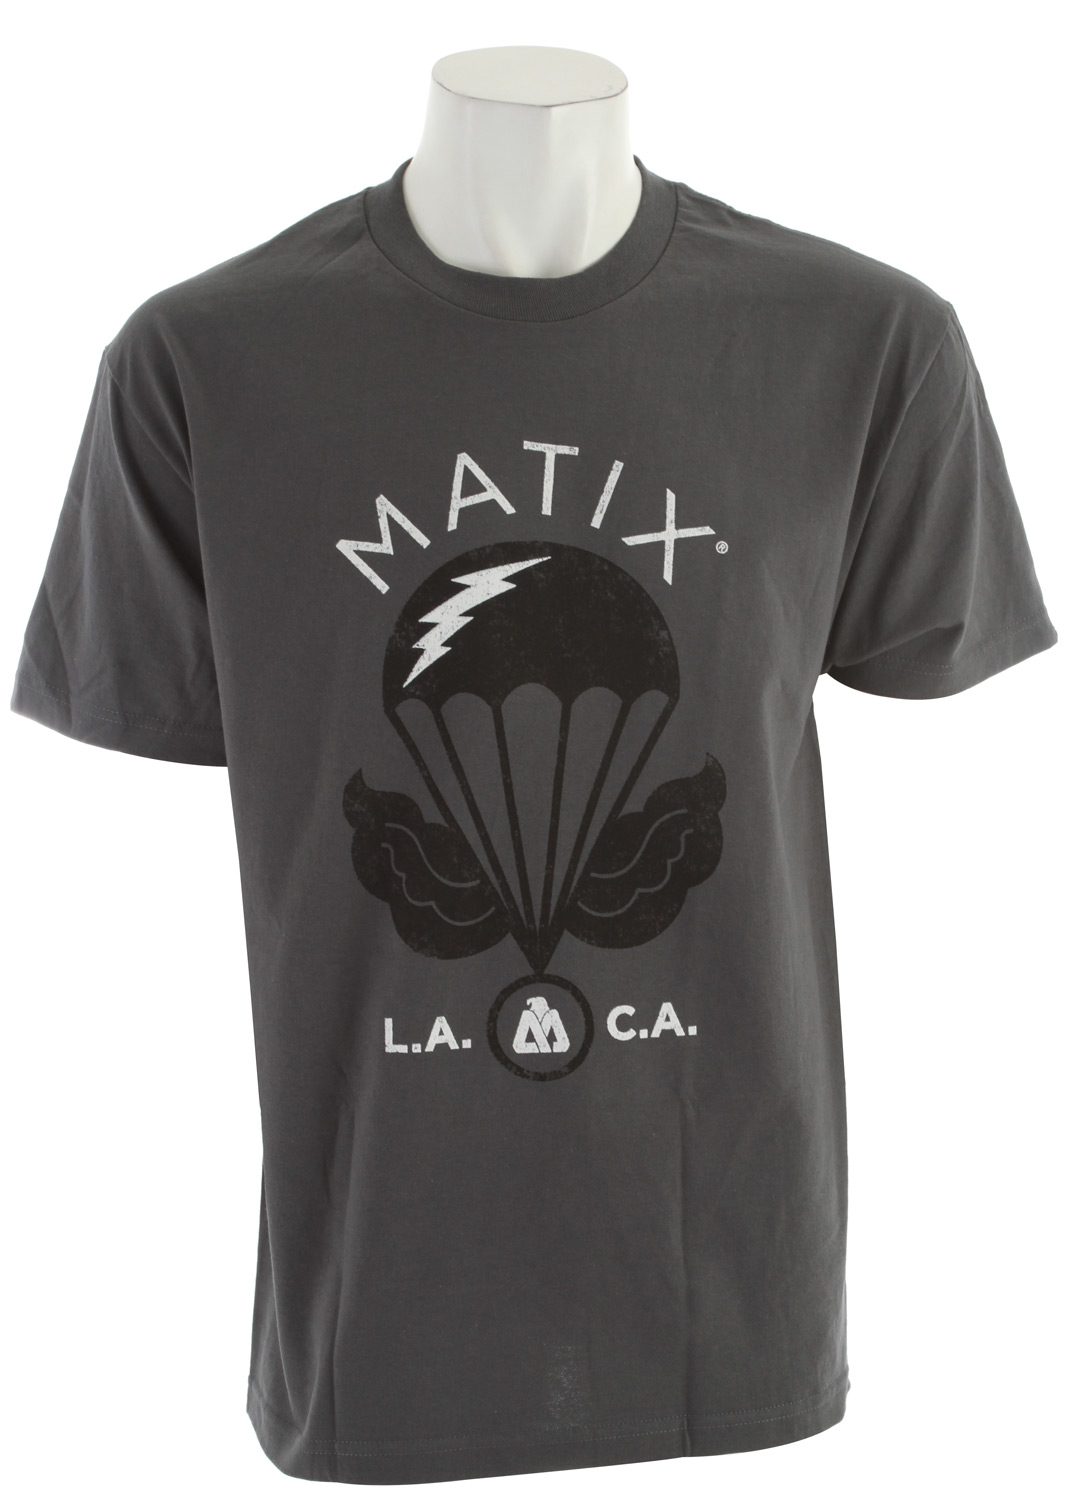 The Matix Brigade T-Shirt is one of those things that you just gotta have for your own. It's the unique style of Matix combined with a tried and true comfort that lasts with your everyday tasks. This bad boy has you covered when it matters the most.Key Features of the Matix Brigade T-Shirt:  Standard fit  100% cotton  Inkprint, with cuff label and monovert lower left back hit - $10.95